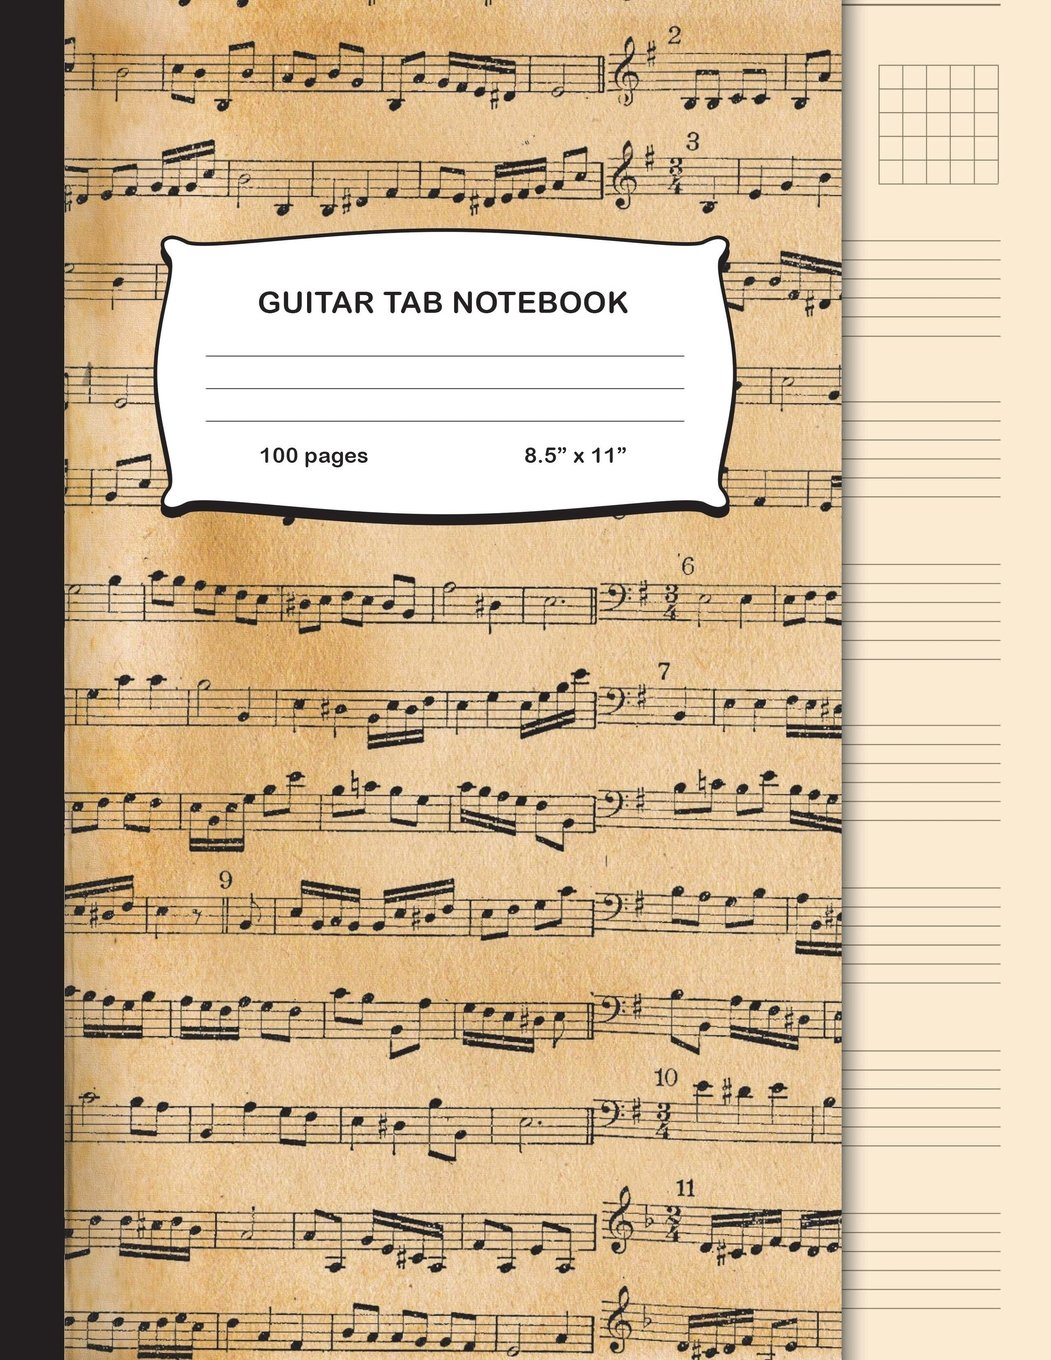 Guitar Tab Notebook: Blank Sheet Music for Guitar Vintage Pattern Cover Manuscript Paper Musicians Composition Notebook Journal Large, 8.5 x 11 inch (Music Composition Notebooks) pdf